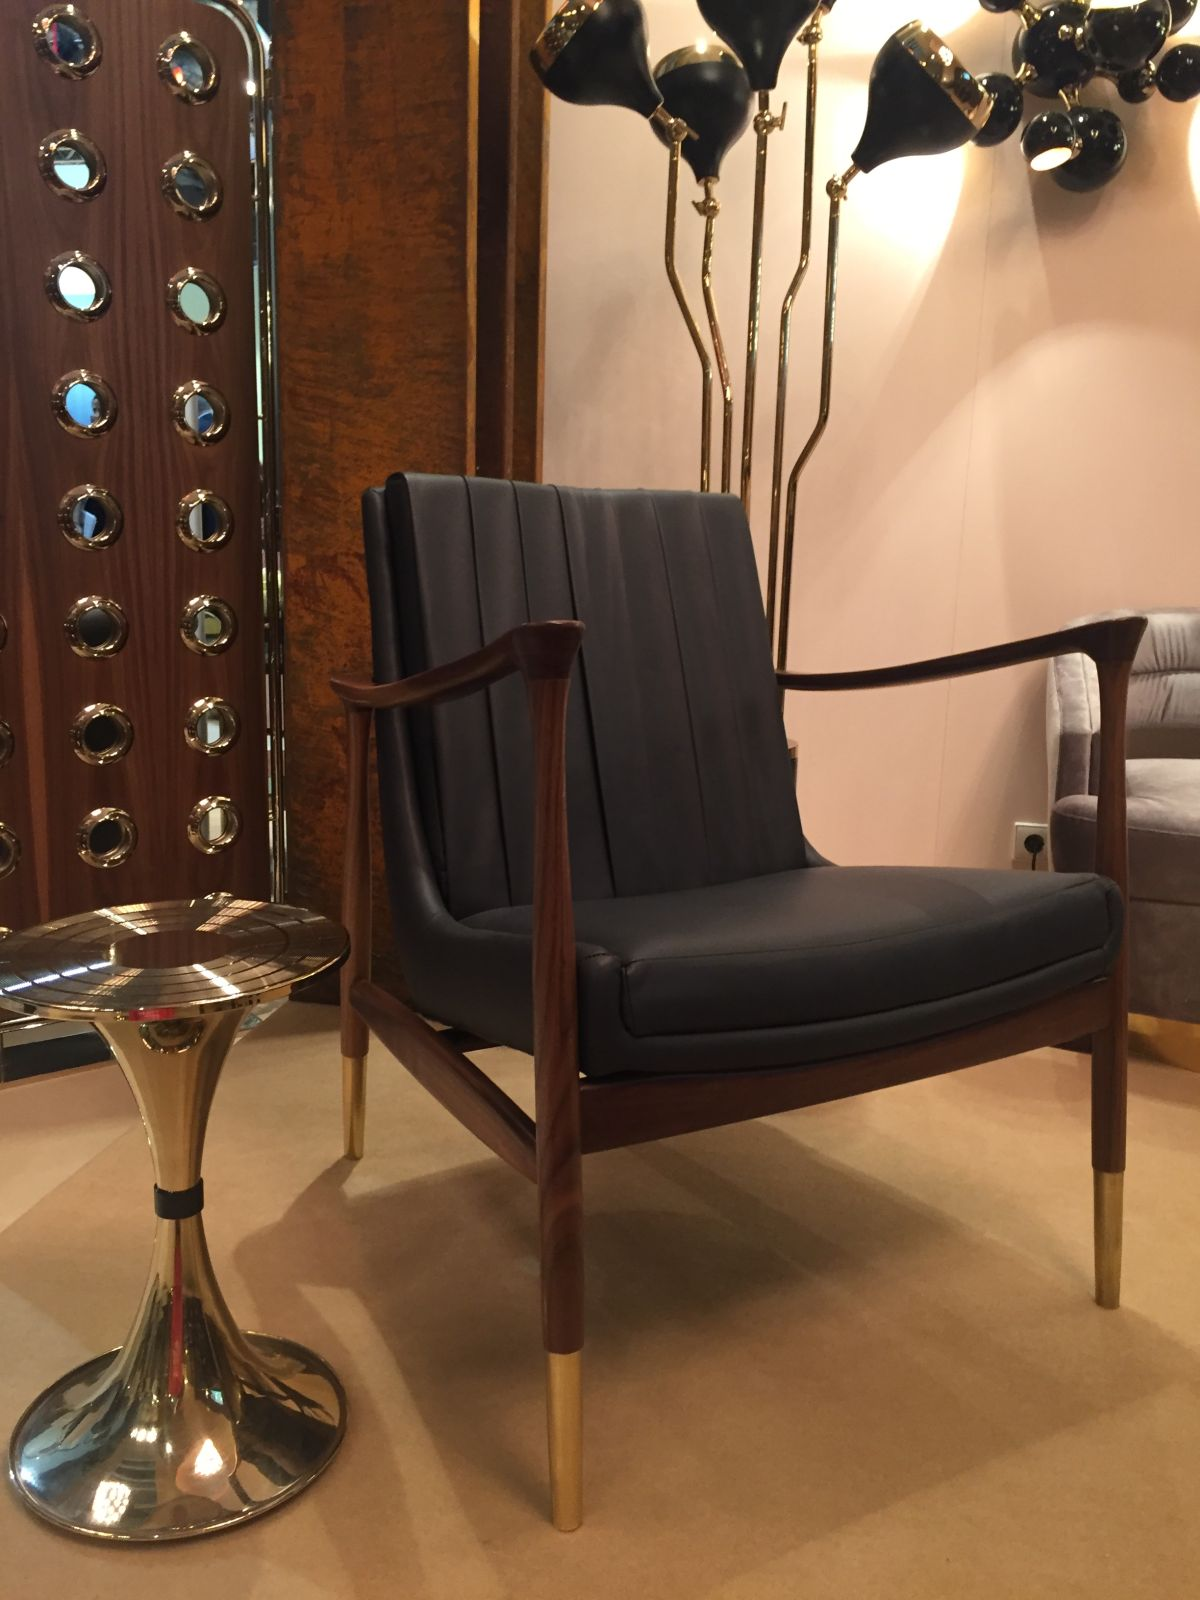 Mid-century inspired furniture with gold legs